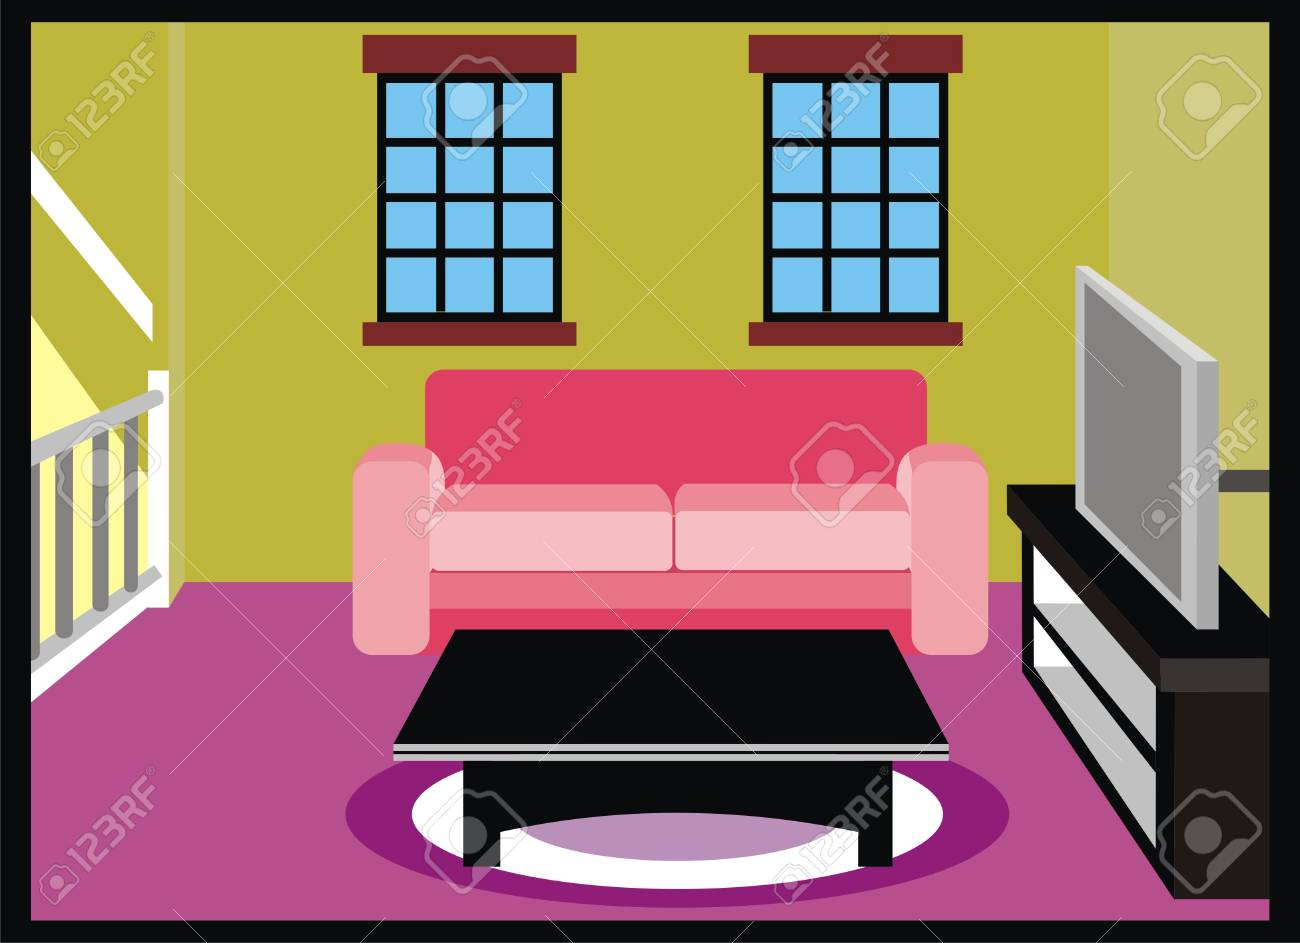 Vector Living Room With Furniture Tv Table Sofa Couch Carpet Royalty Free Cliparts Vectors And Stock Illustration Image 71587494